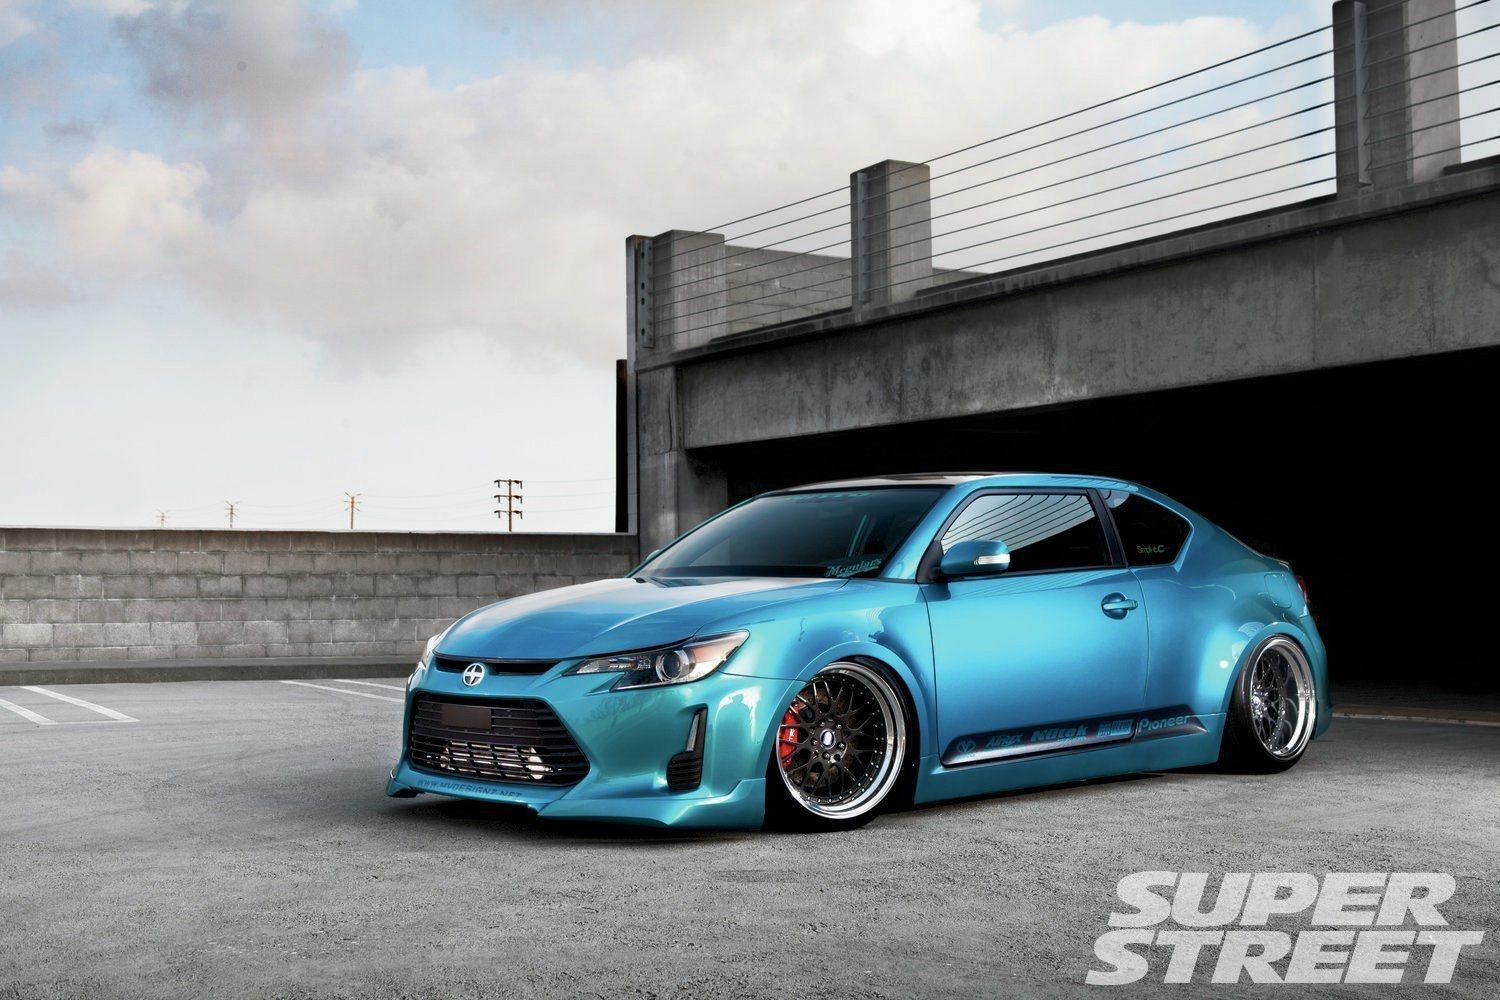 2016 scion tc is a new generation of sports car coupe scion which is a division